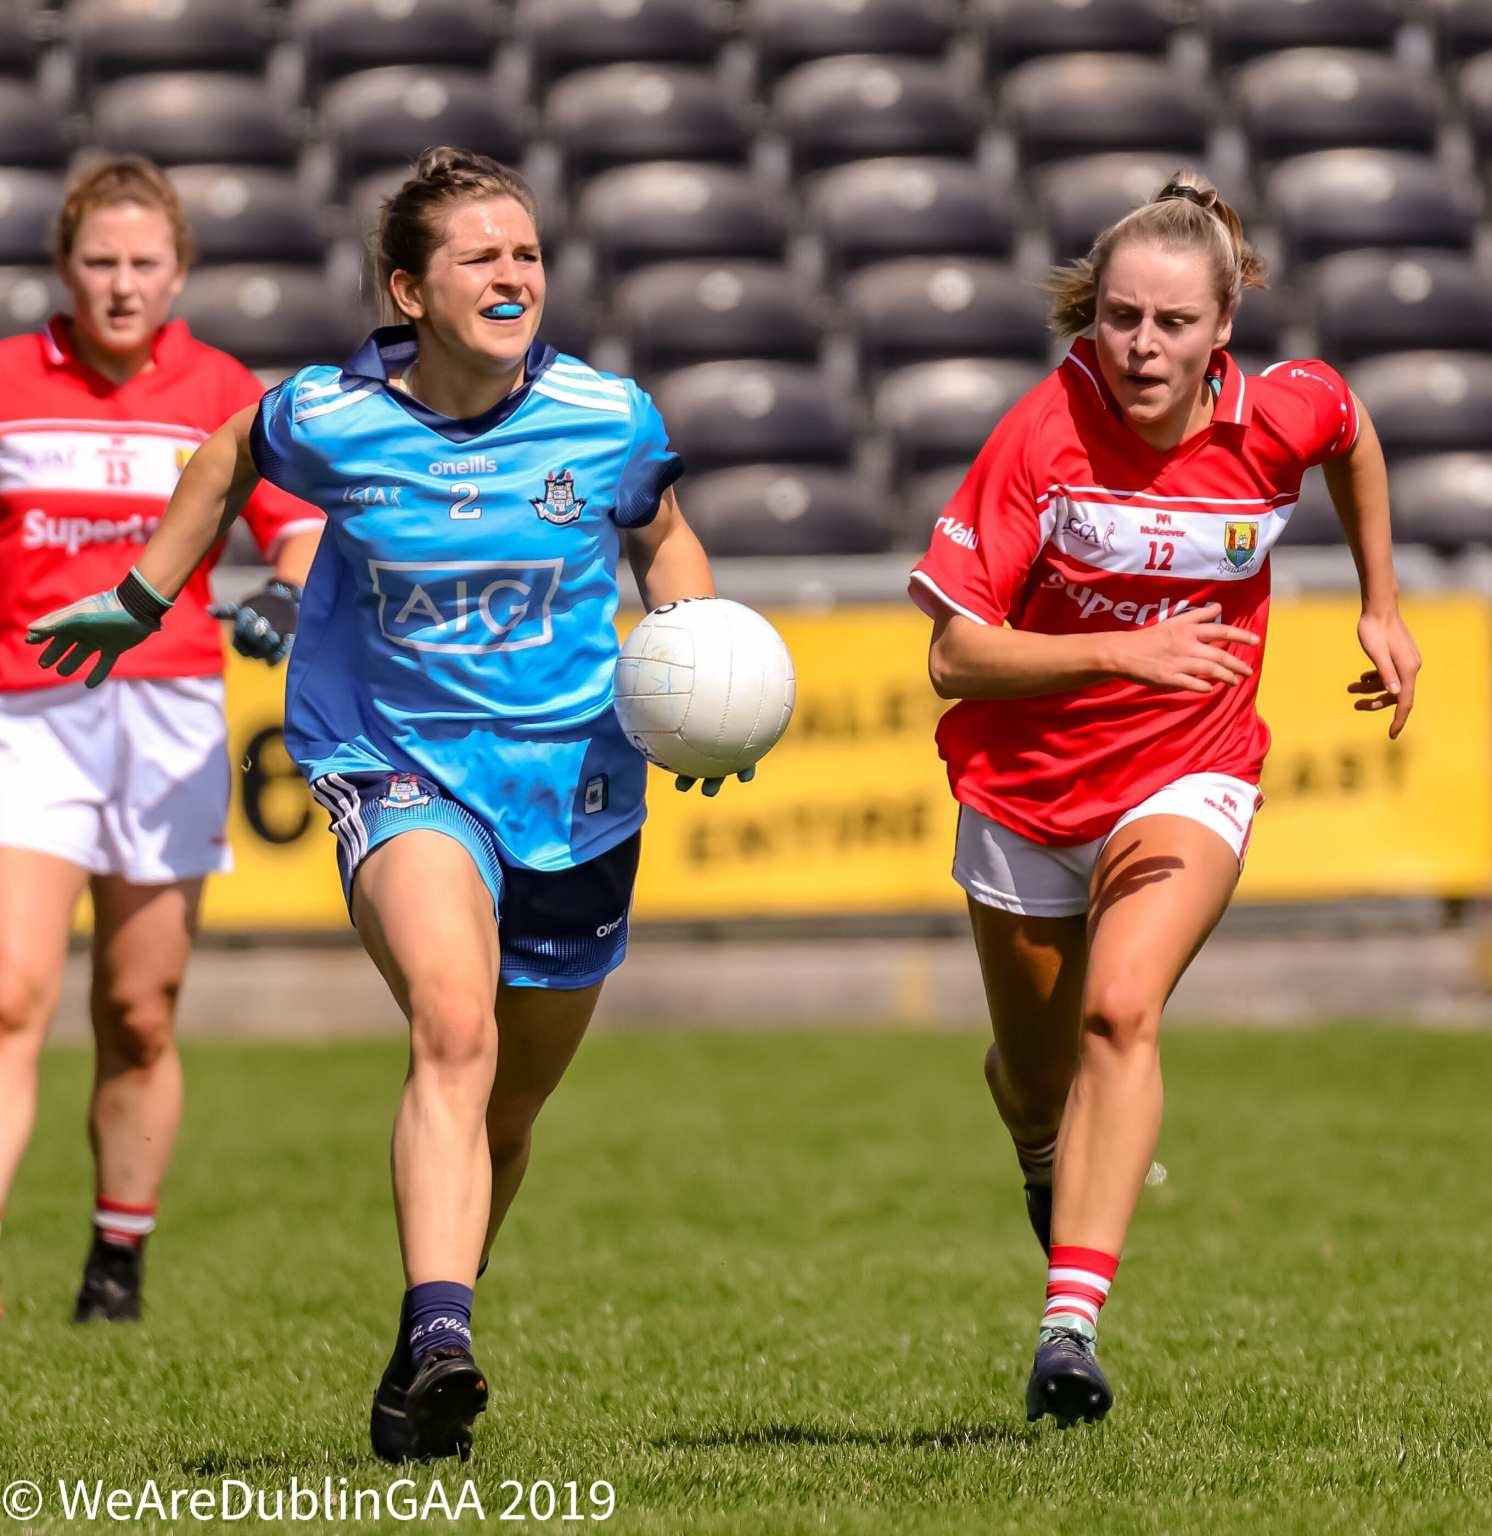 A Dublin ladies footballers breaks away from a Cork player, both sides meet this weekend in the TG4 Senior All Ireland Semi Final in Croke Park